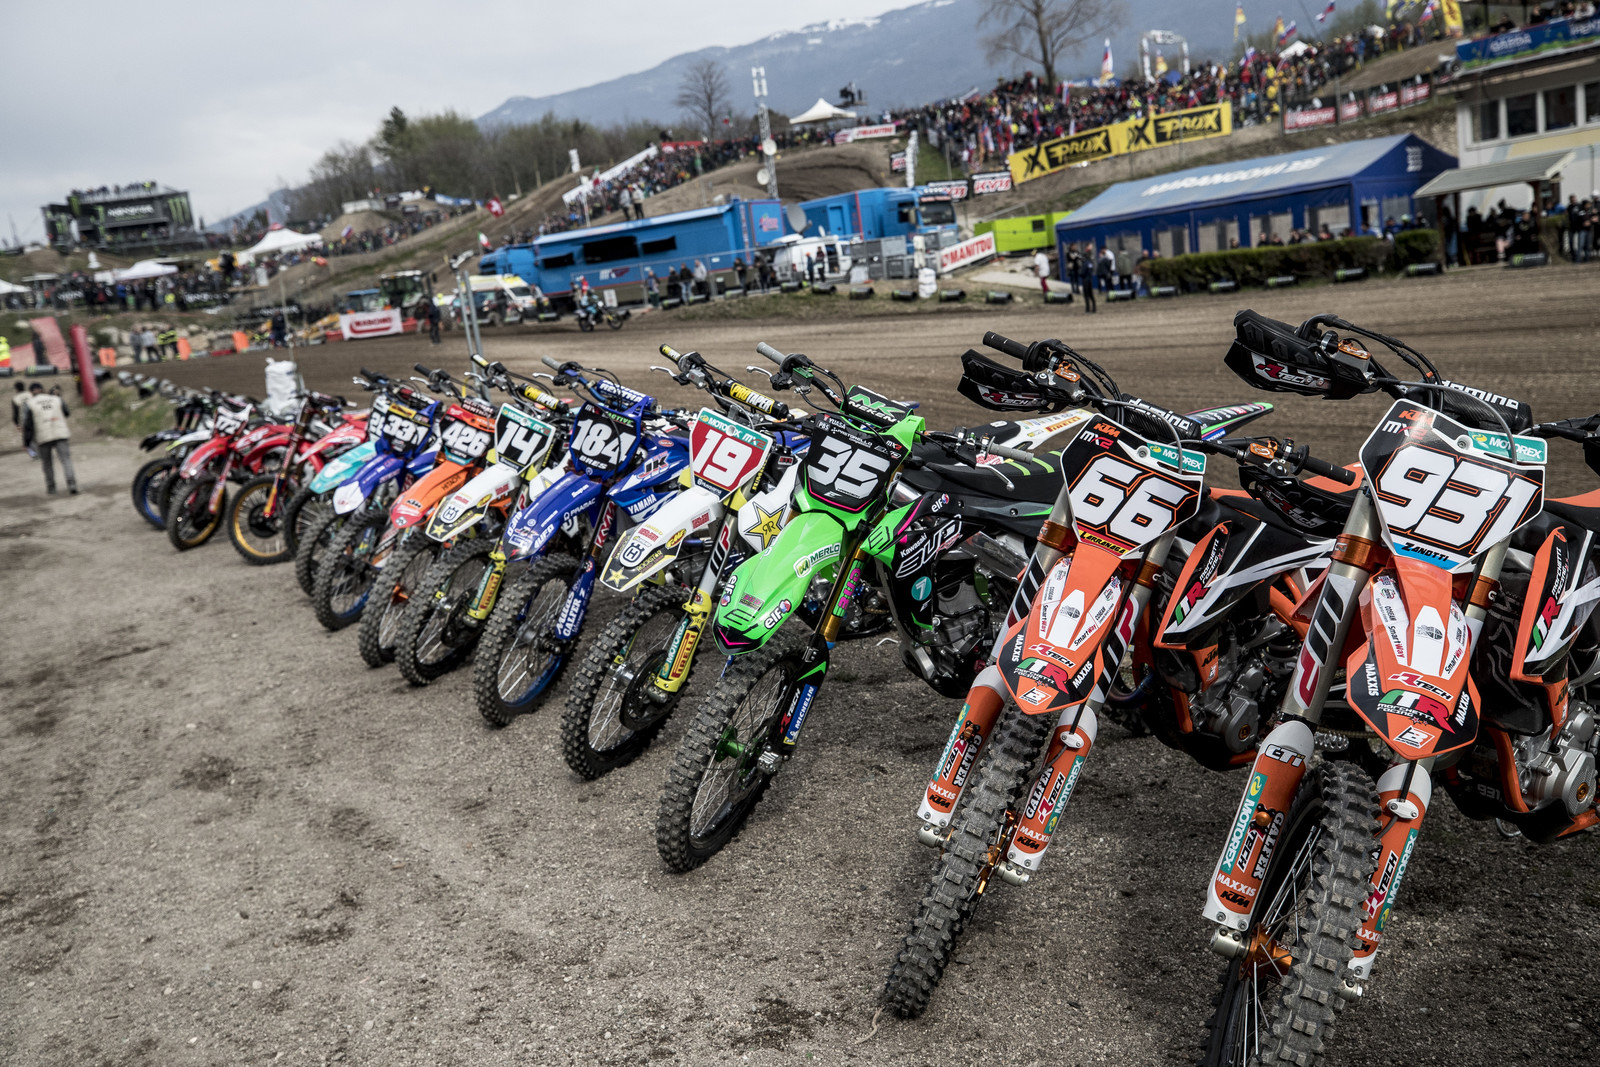 A selection of MX2 bikes.